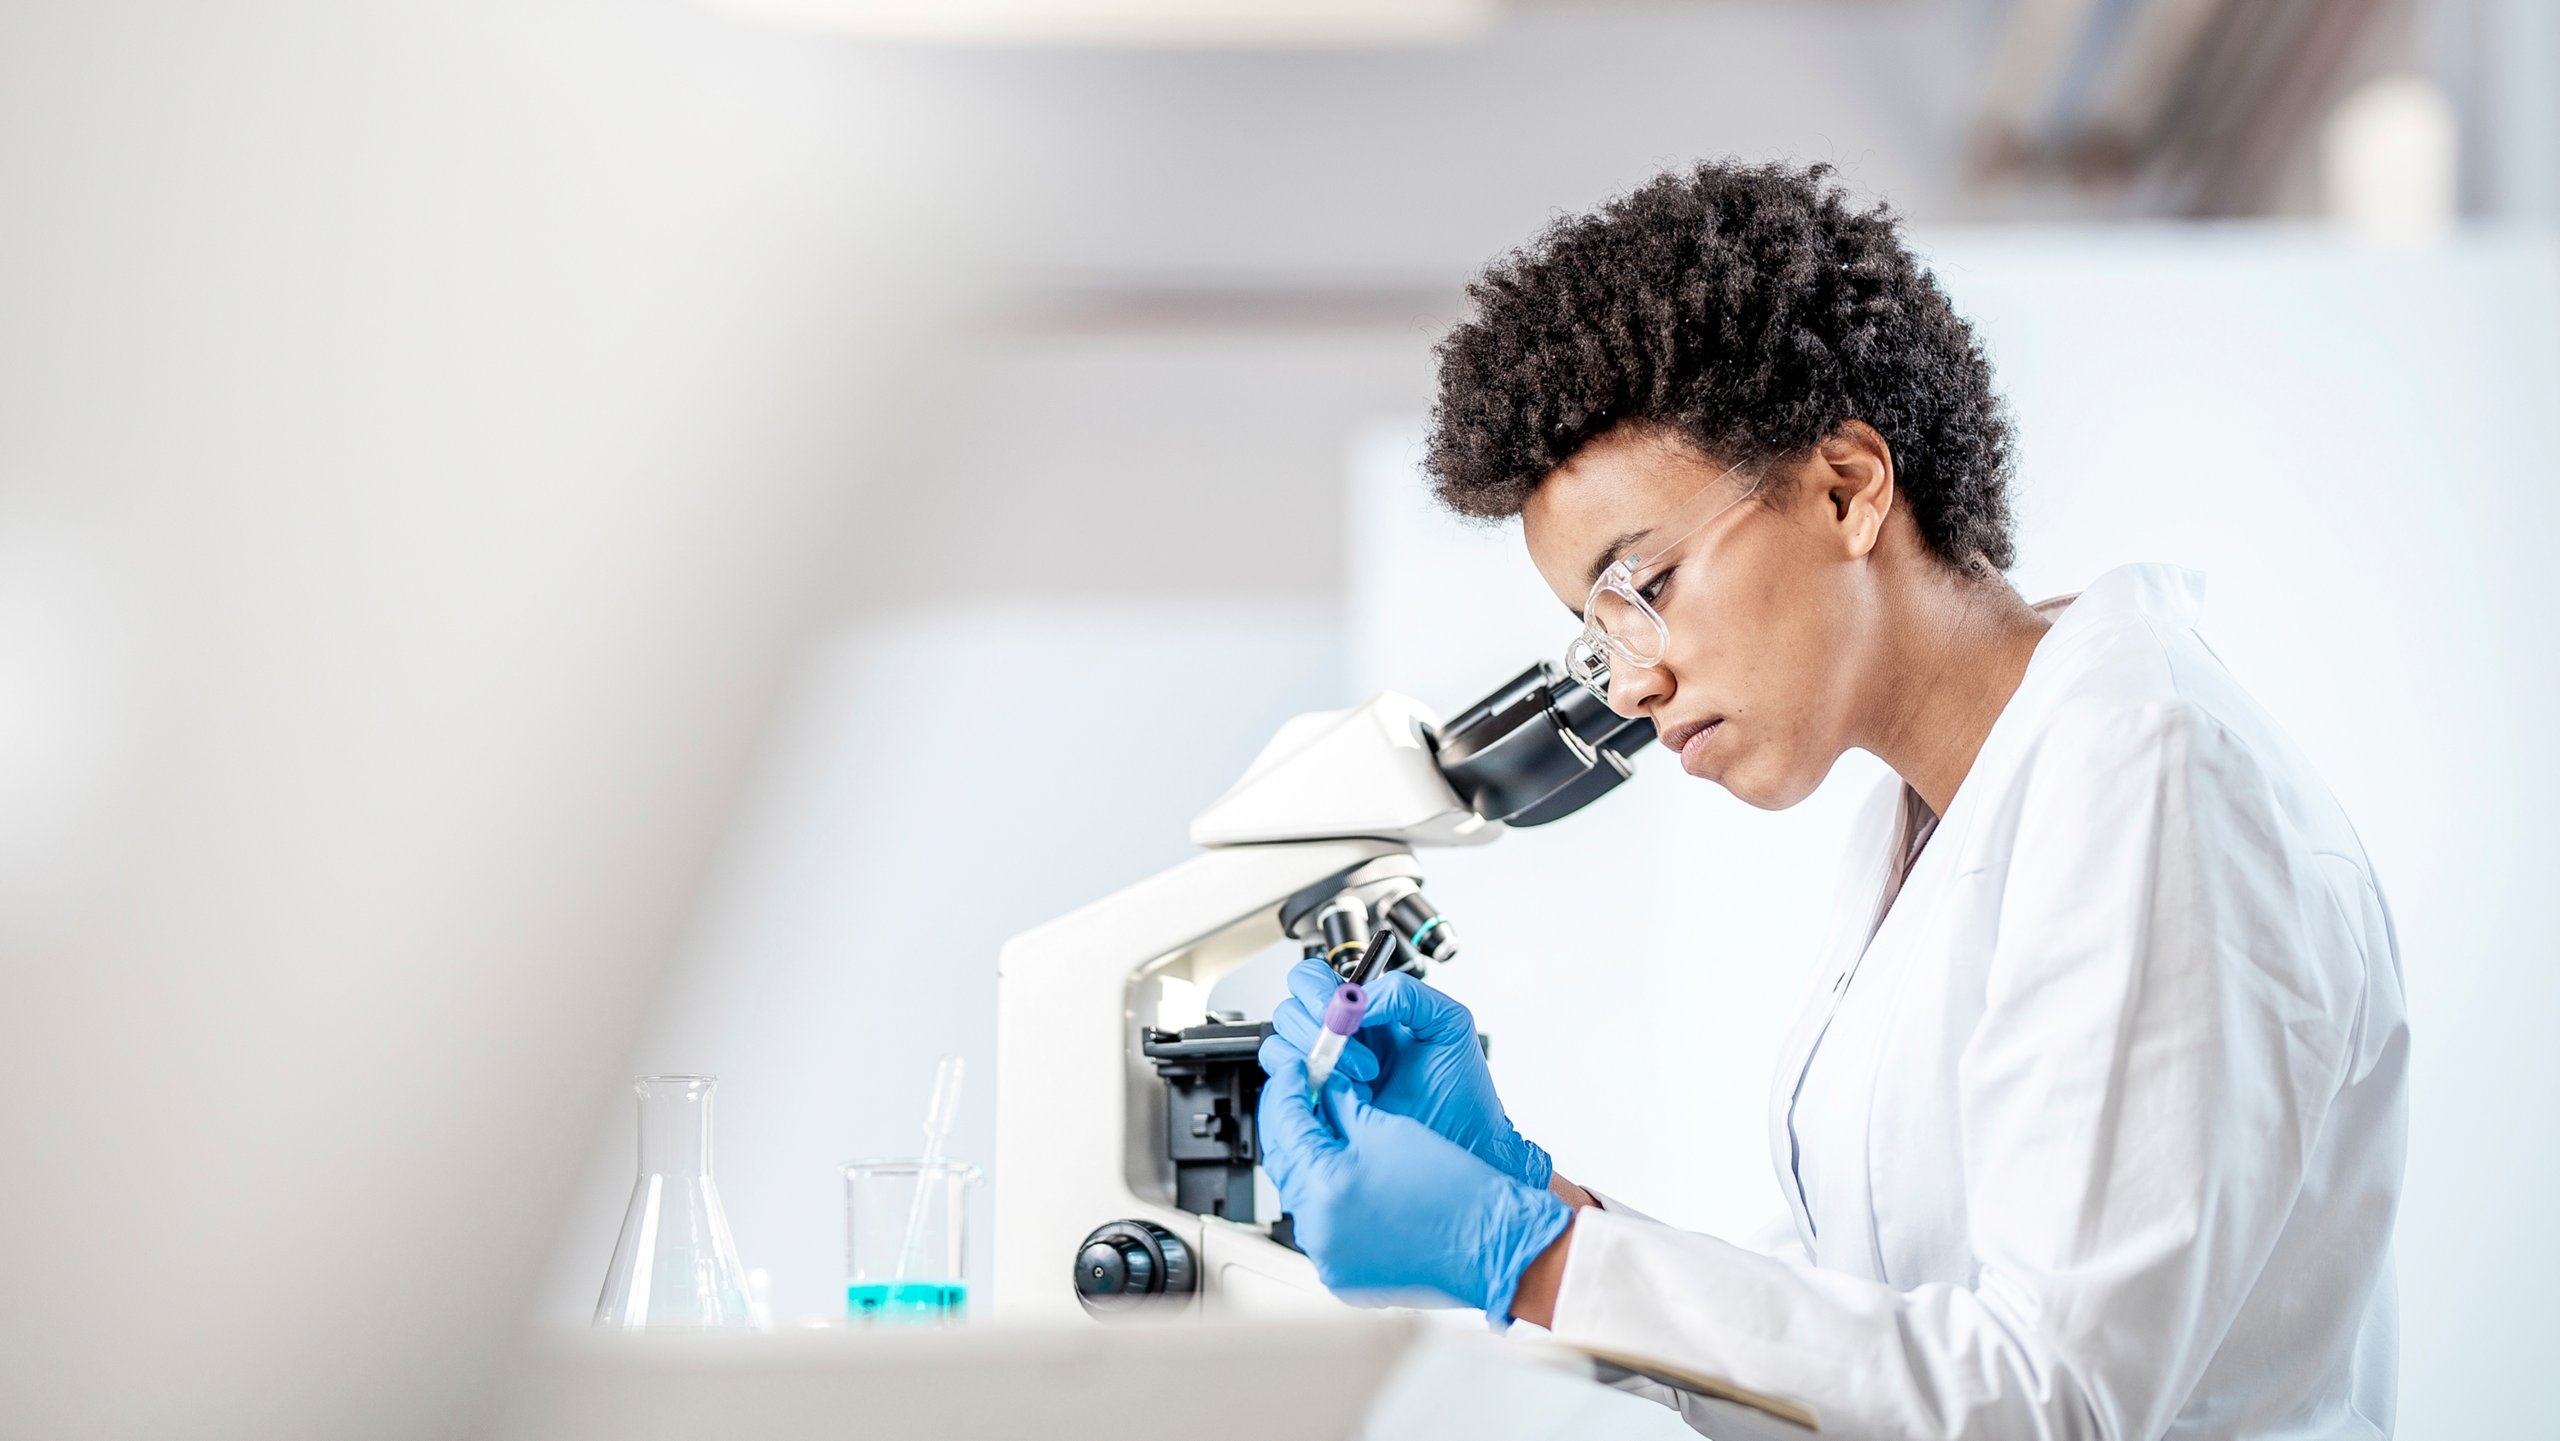 Female lab technician writing information on a test tube with a marker after viewing results in a microscope